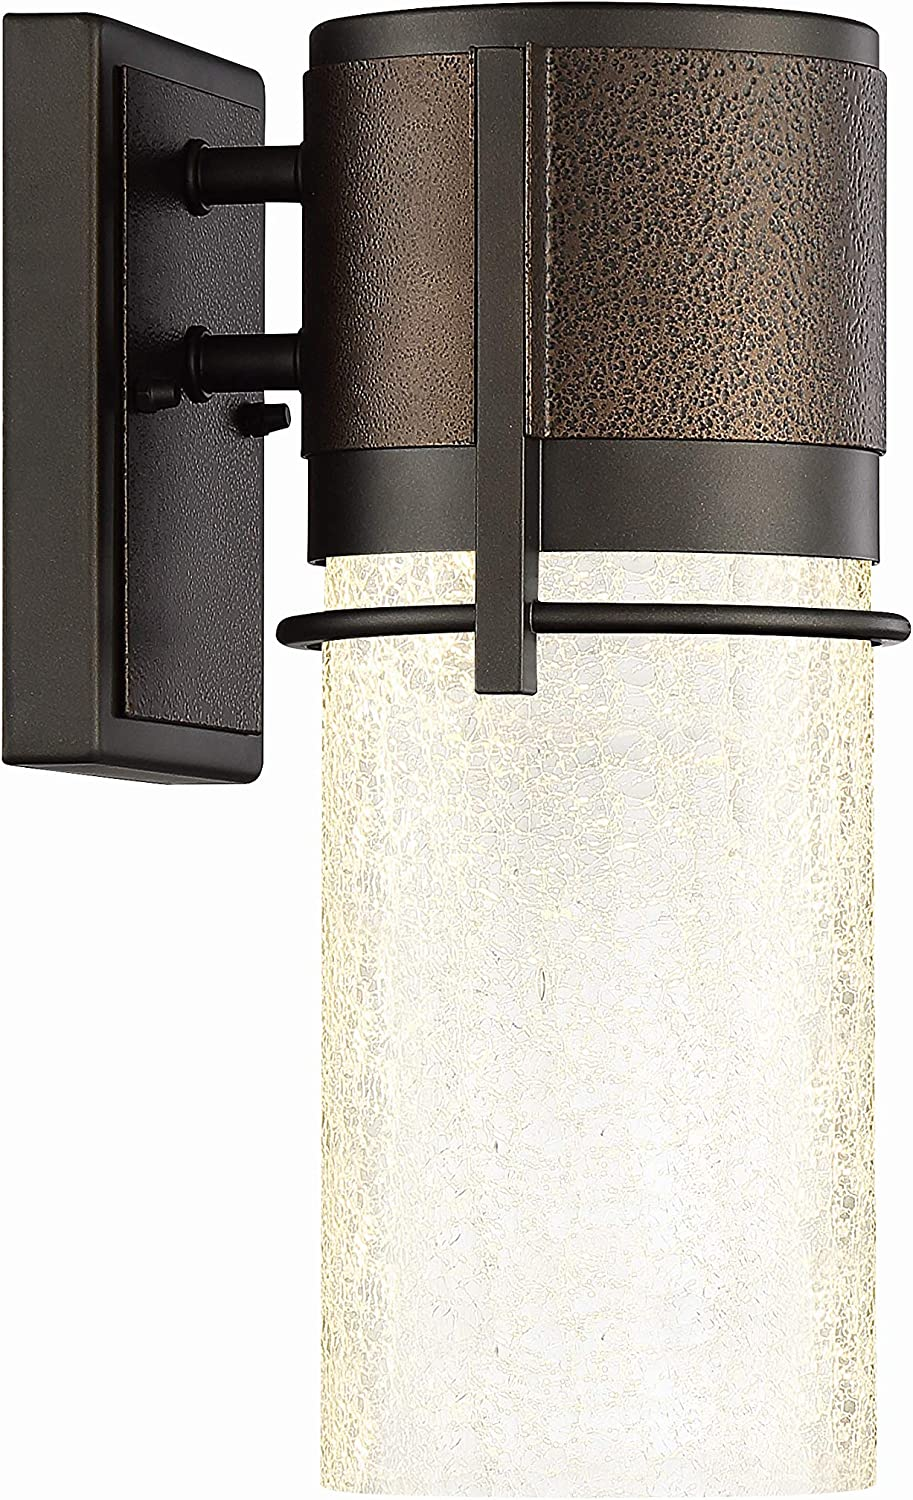 DF SmartPlus Brushed Bronze LED32911-VC-BBZ Smart Fixed price for sale Outd Ranking TOP8